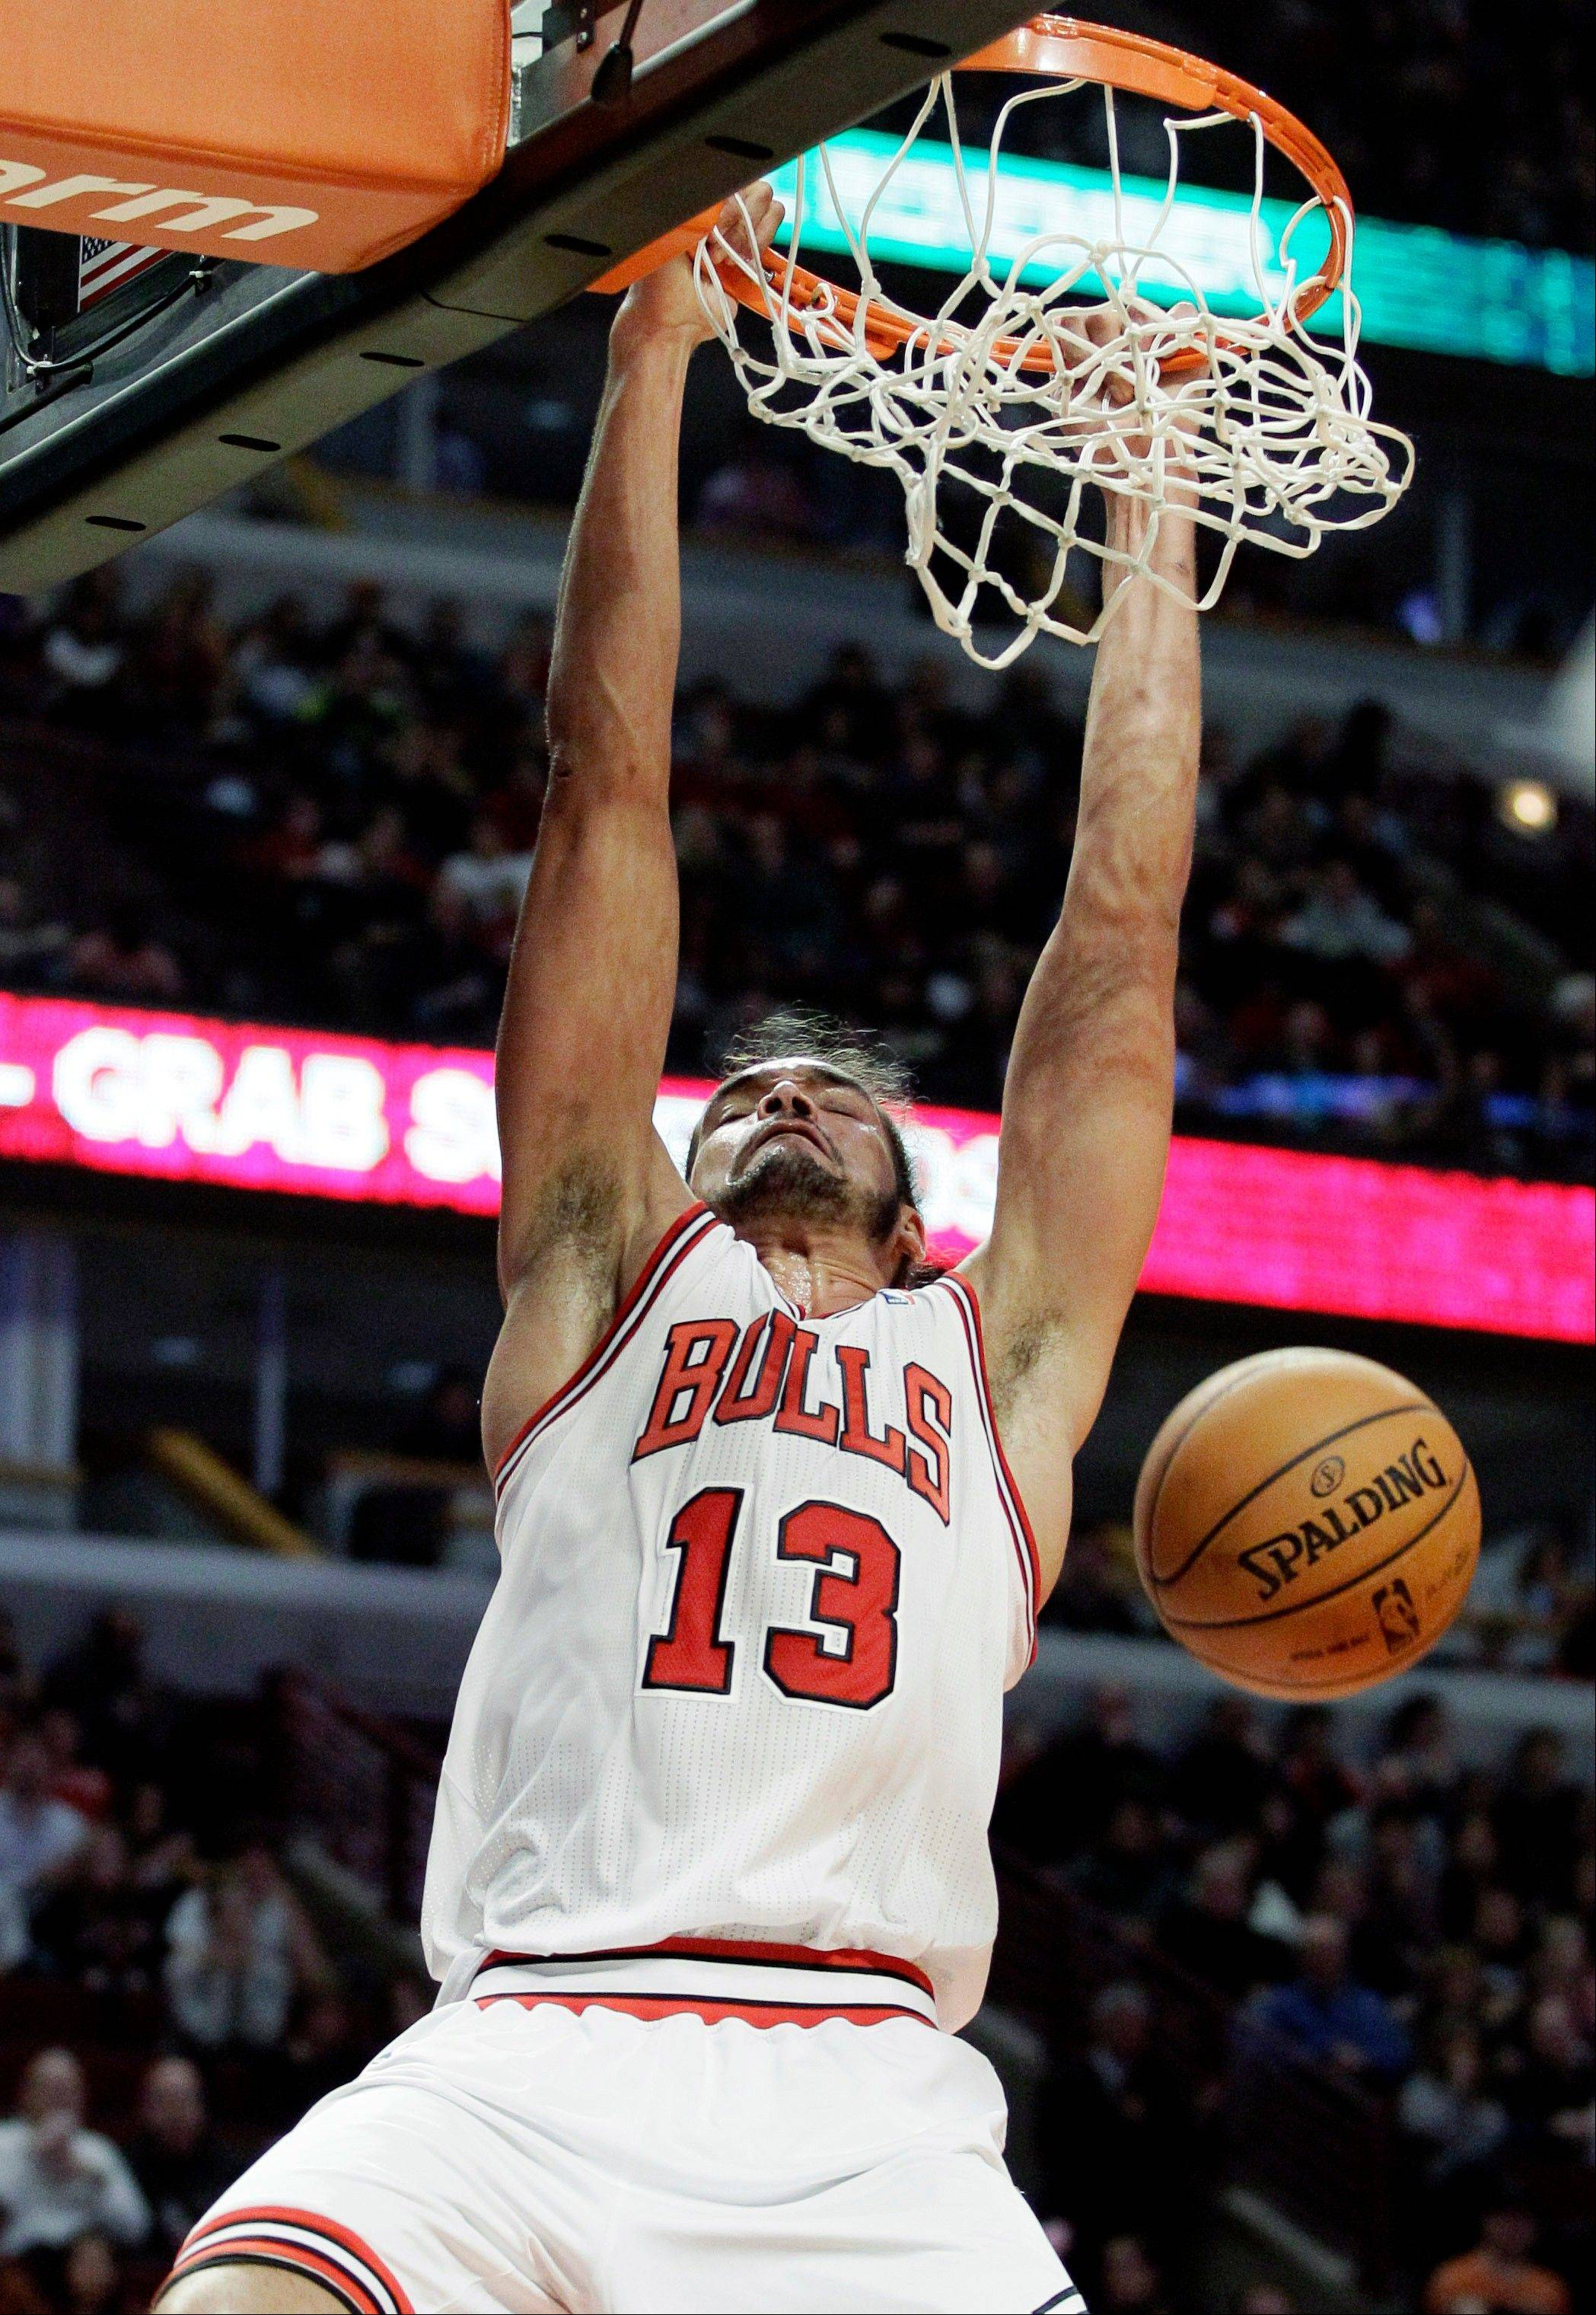 Joakim Noah dunks against the Philadelphia 76ers during the second half of the Bulls' win on Saturday, Dec. 1, 2012. The Bulls won 93-88.